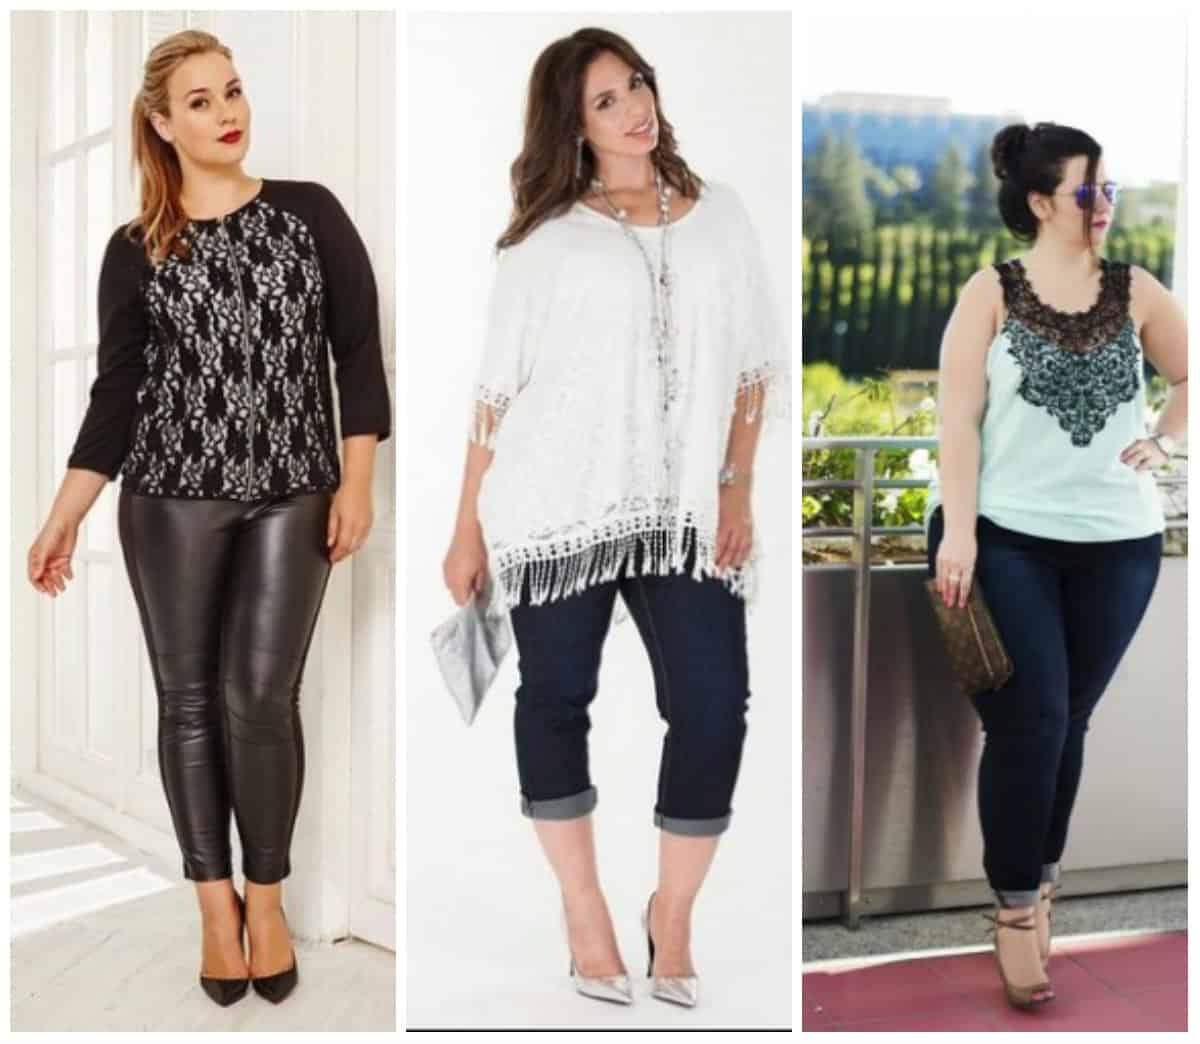 Women's-plus-size-clothing-trends-Spring-Summer-2016-4